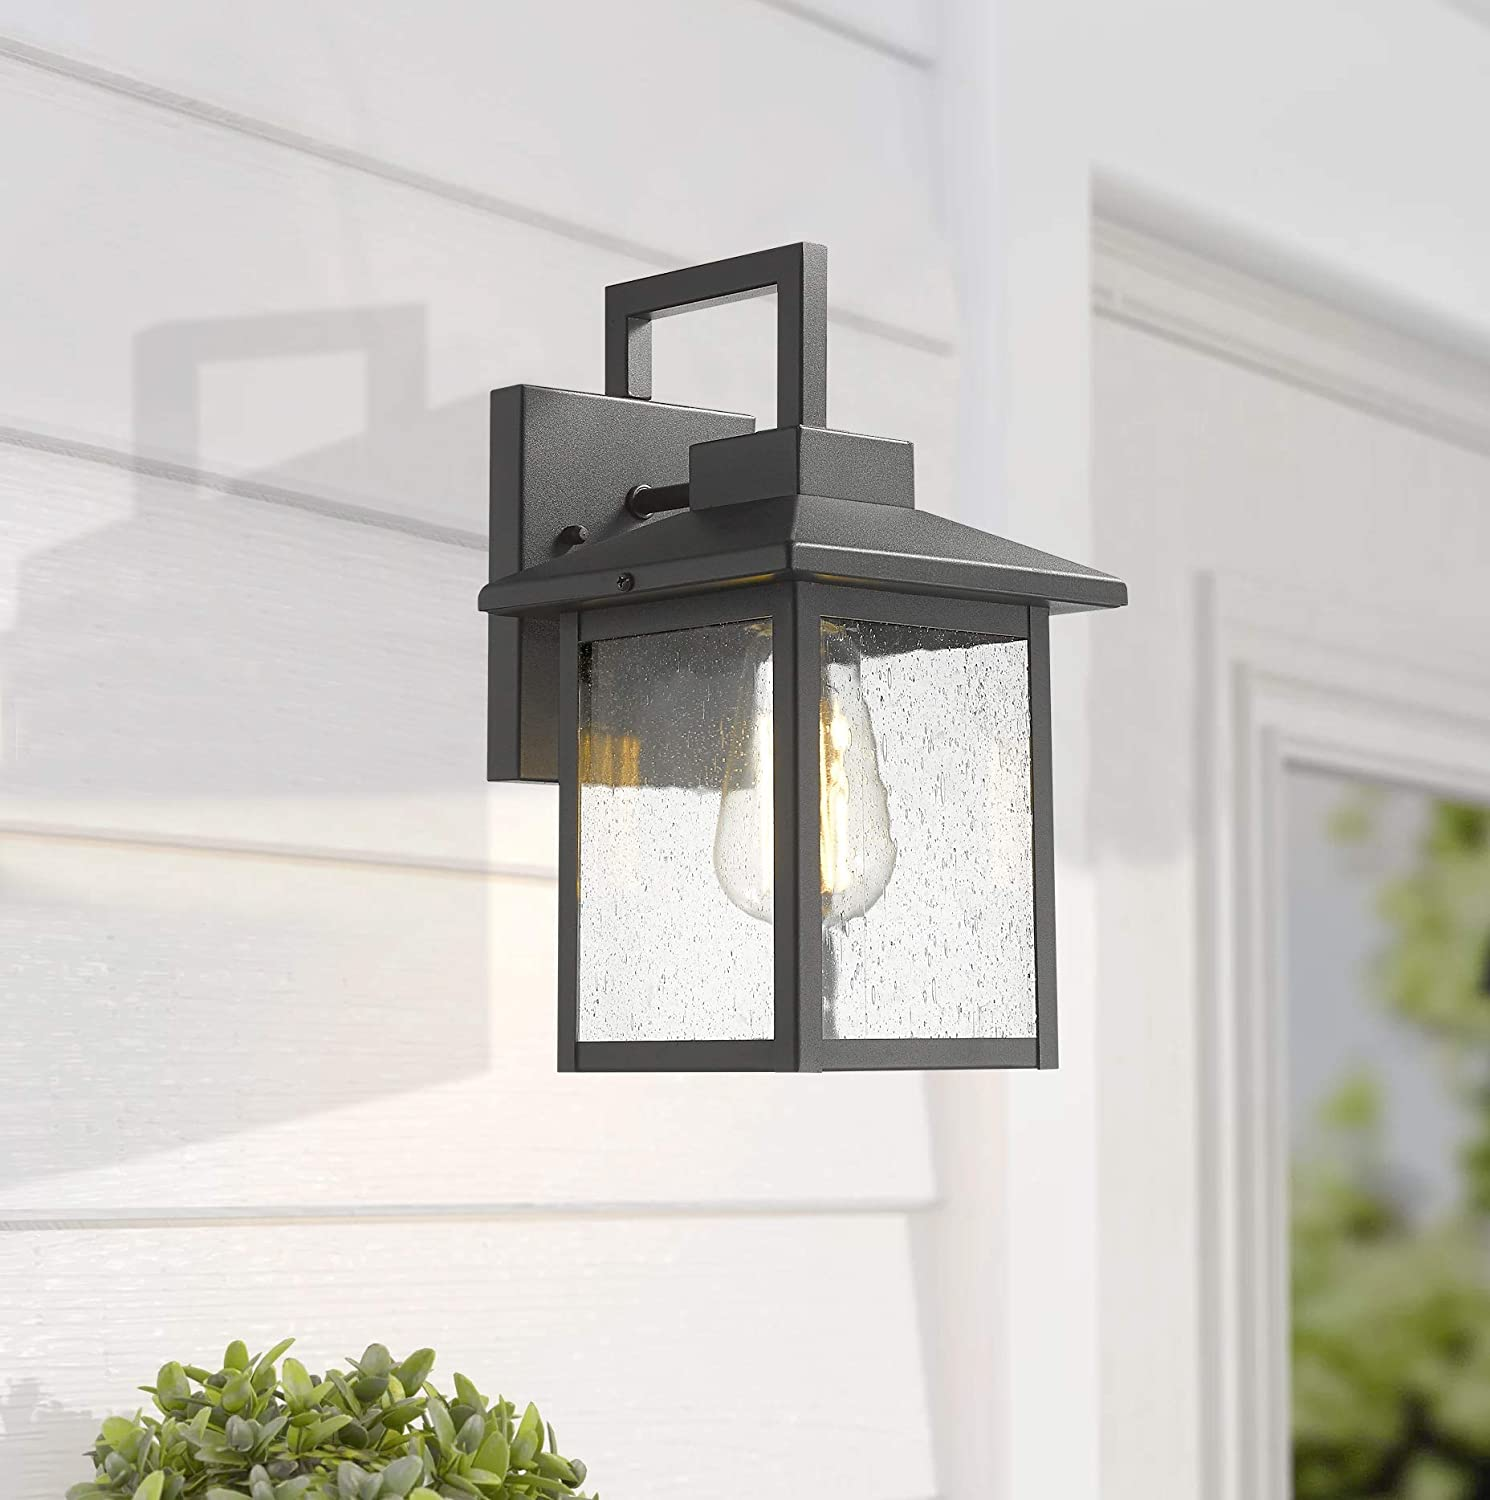 Exterior Wall Lantern/with Seeded Glass Shade Bestshared Indoor Outdoor Wall Mount Light Fixture 1-Light Wall Sconce Mounted Light Black, 1 Piece